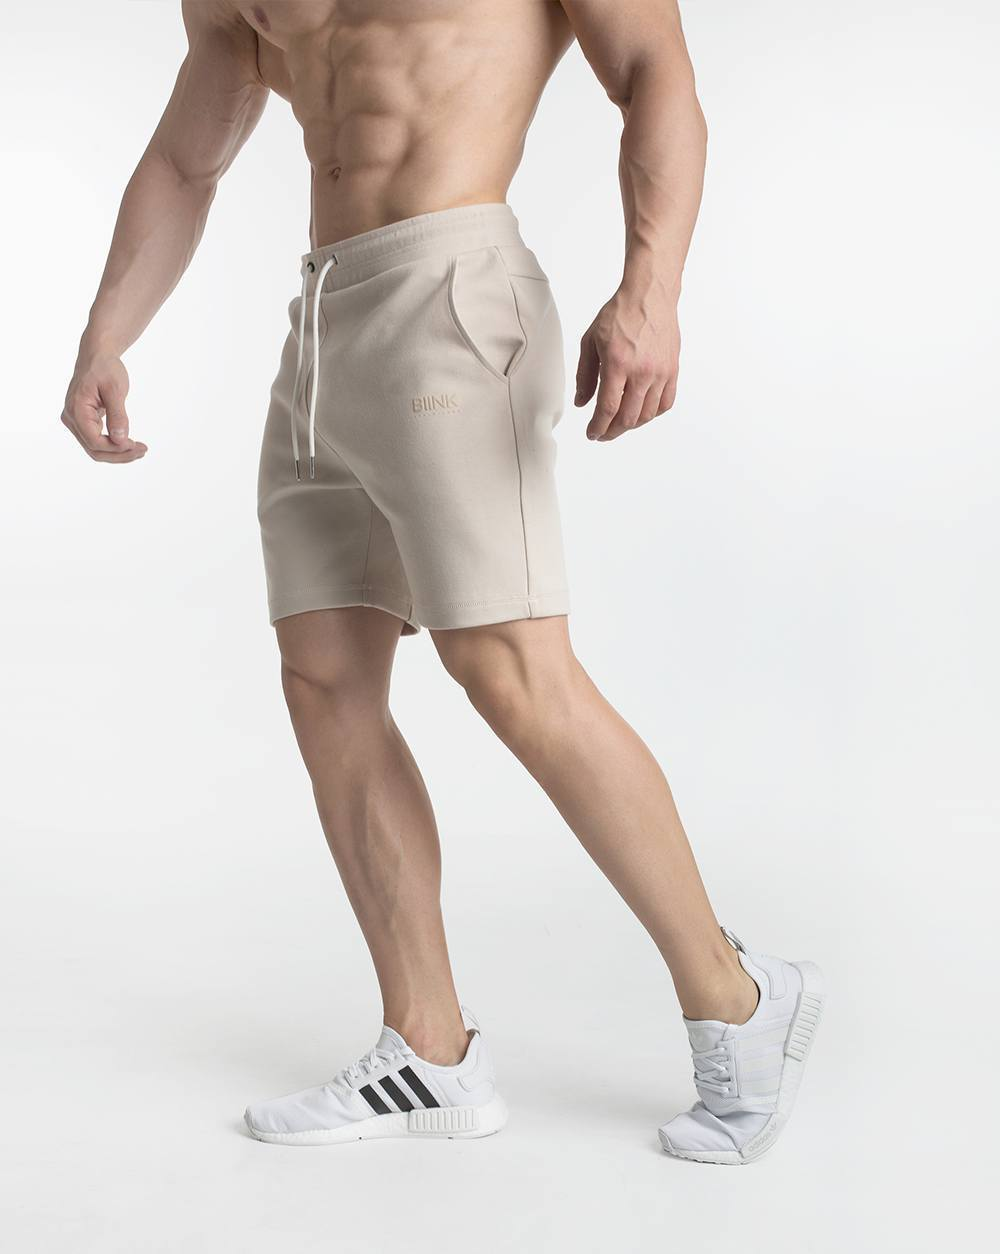 Biink Imperial Fitted V2 Shorts - Cream